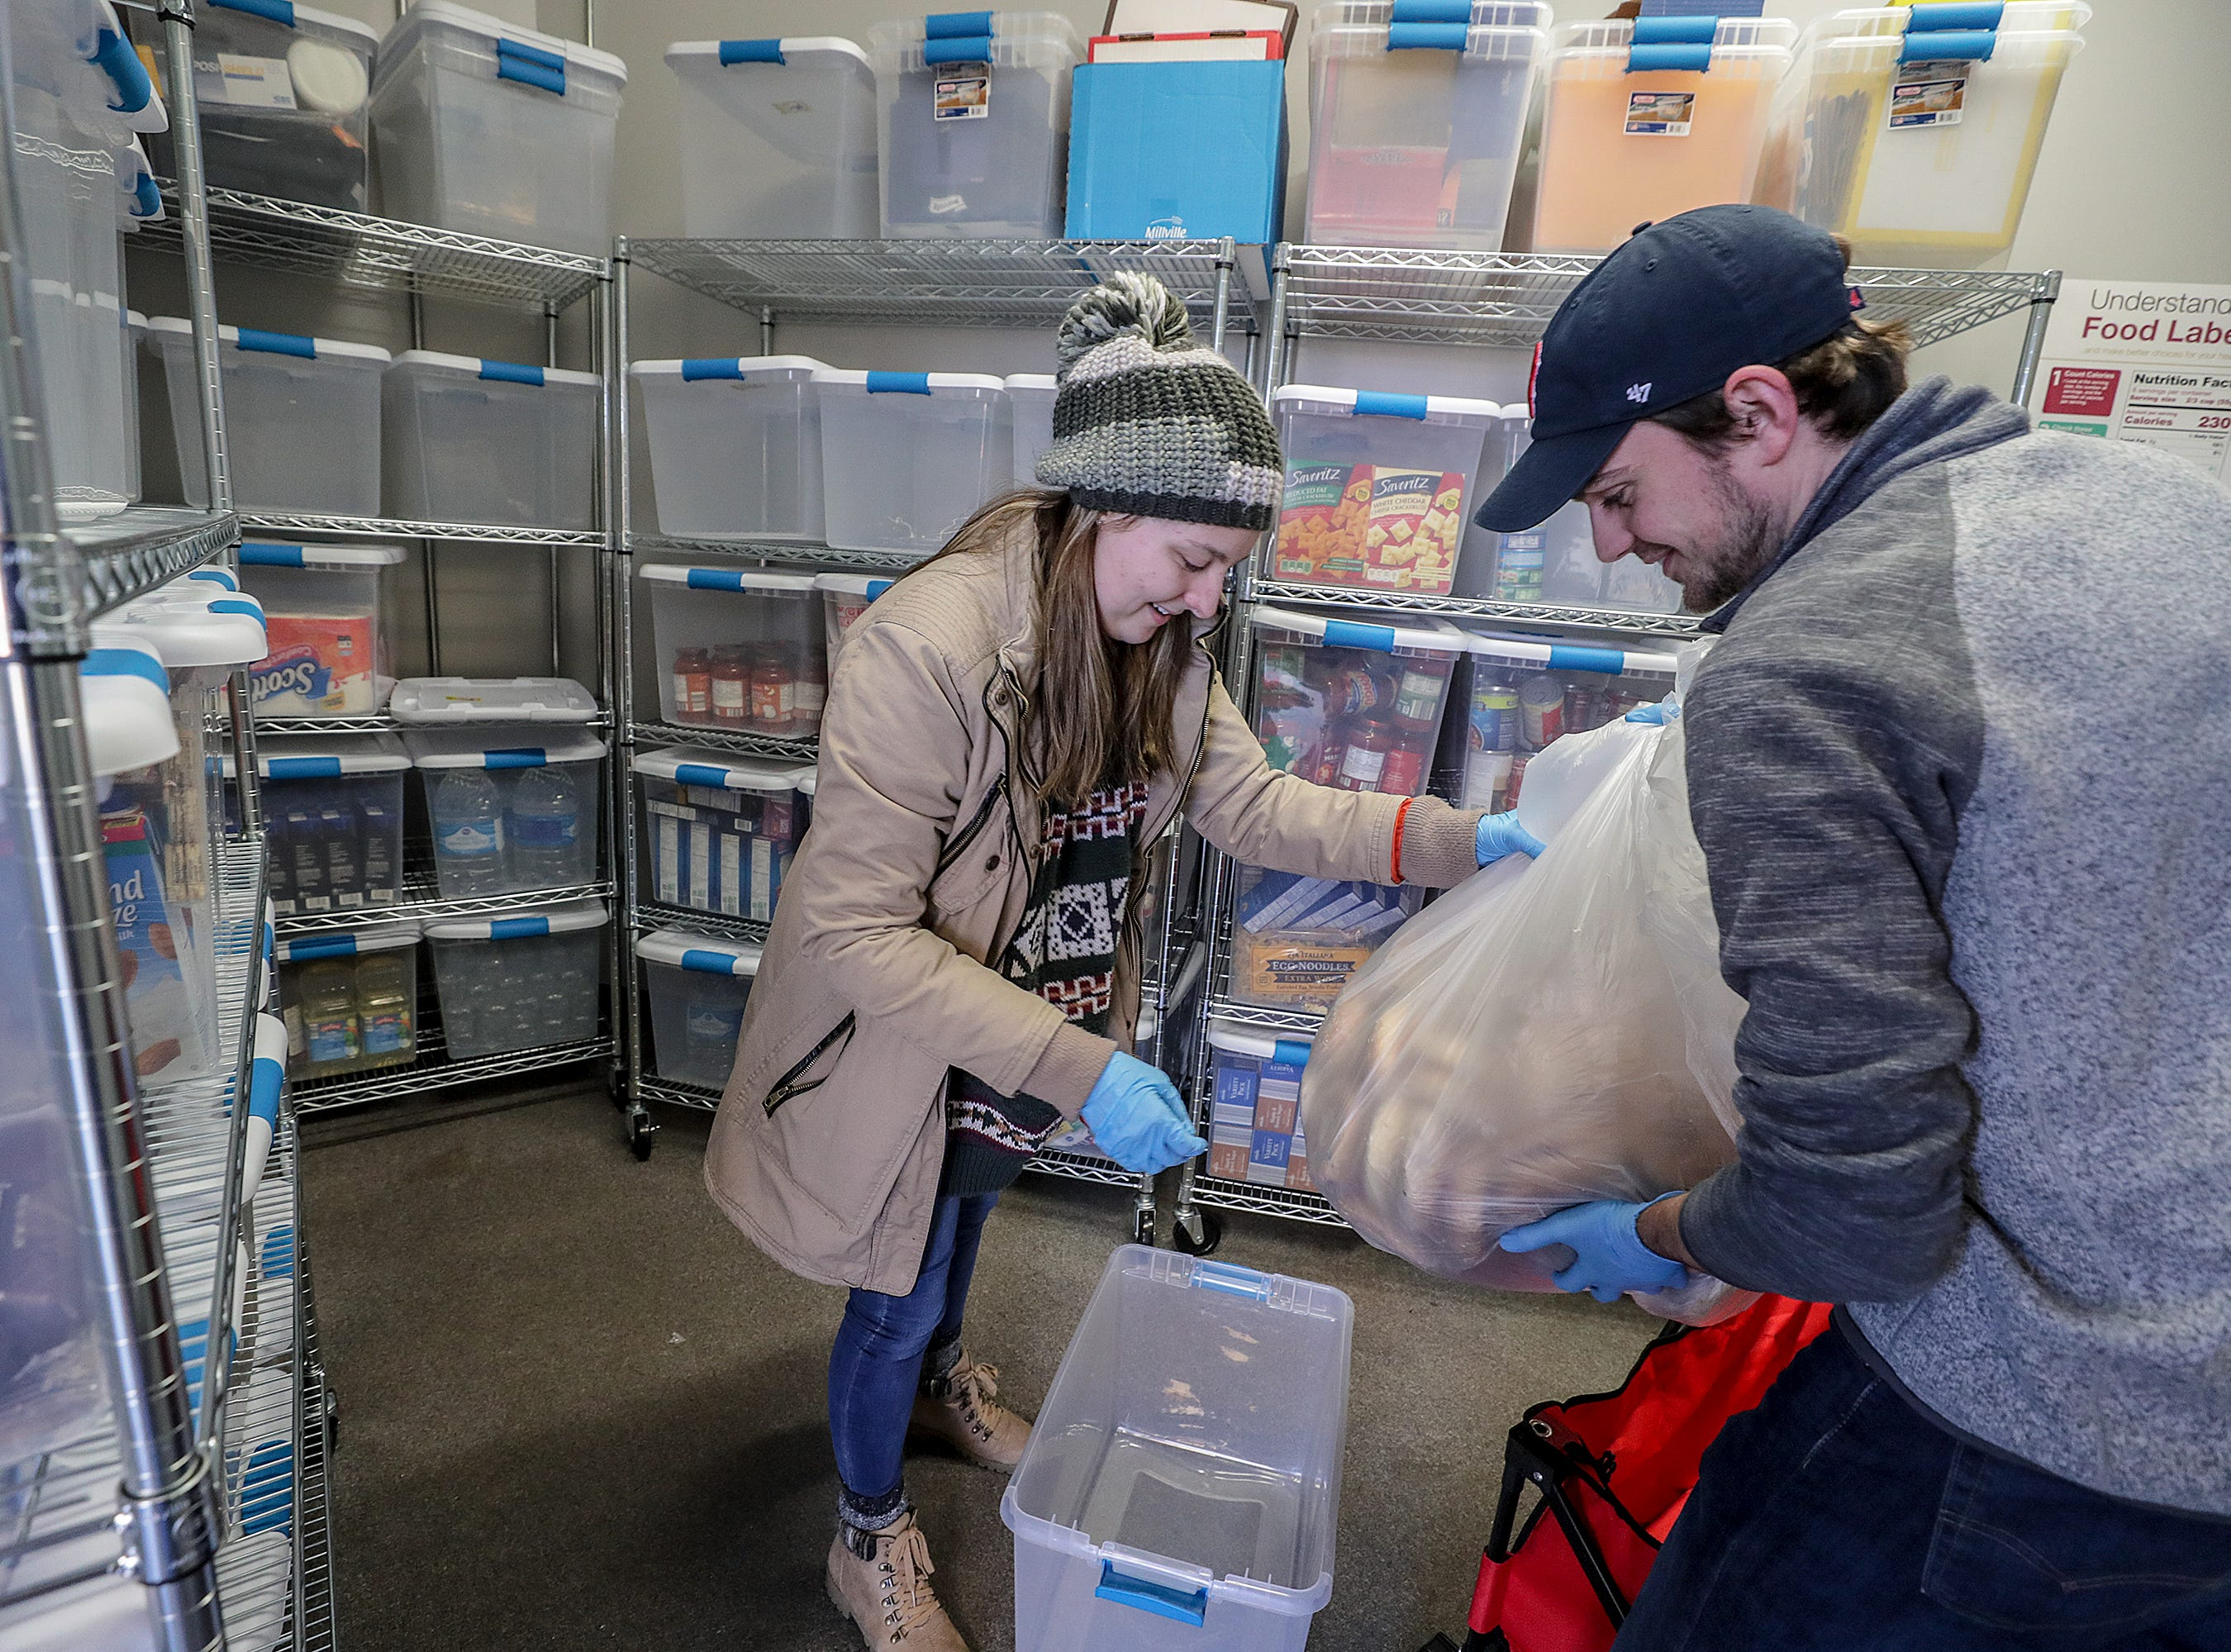 Henny Ransdell, left, and Ryan Buckman, right, take a bag of bagels donated by Einstein Bros. bagels, and put them into a plastic bin at U of L's food bank. Jan. 28, 2019